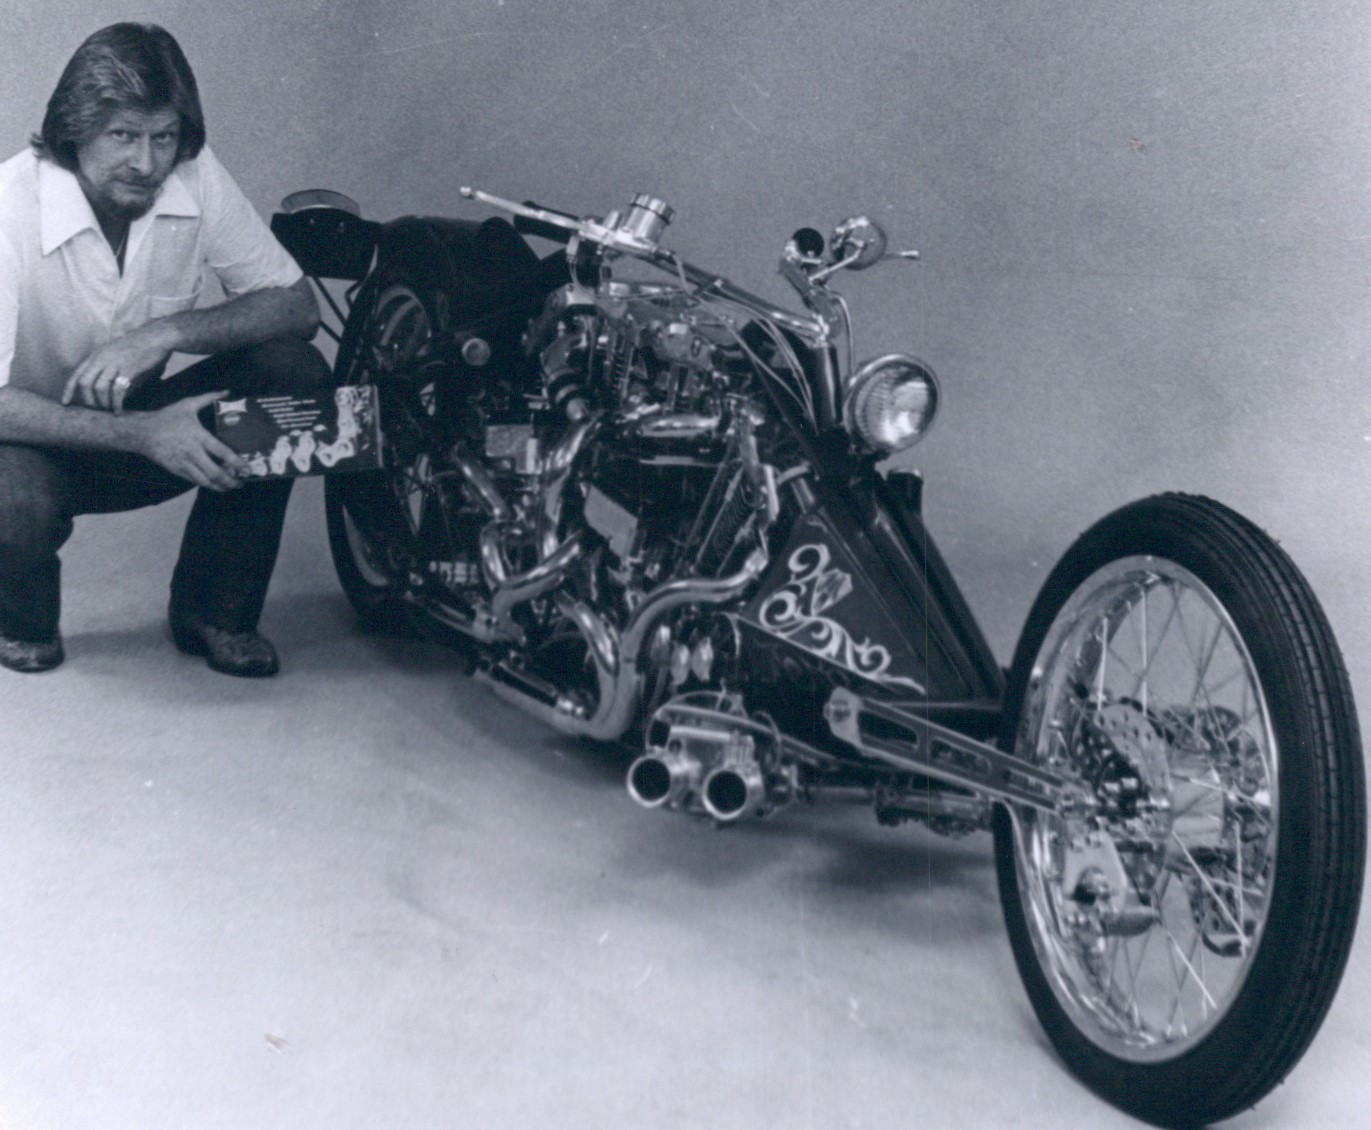 roots of custom motorcycles